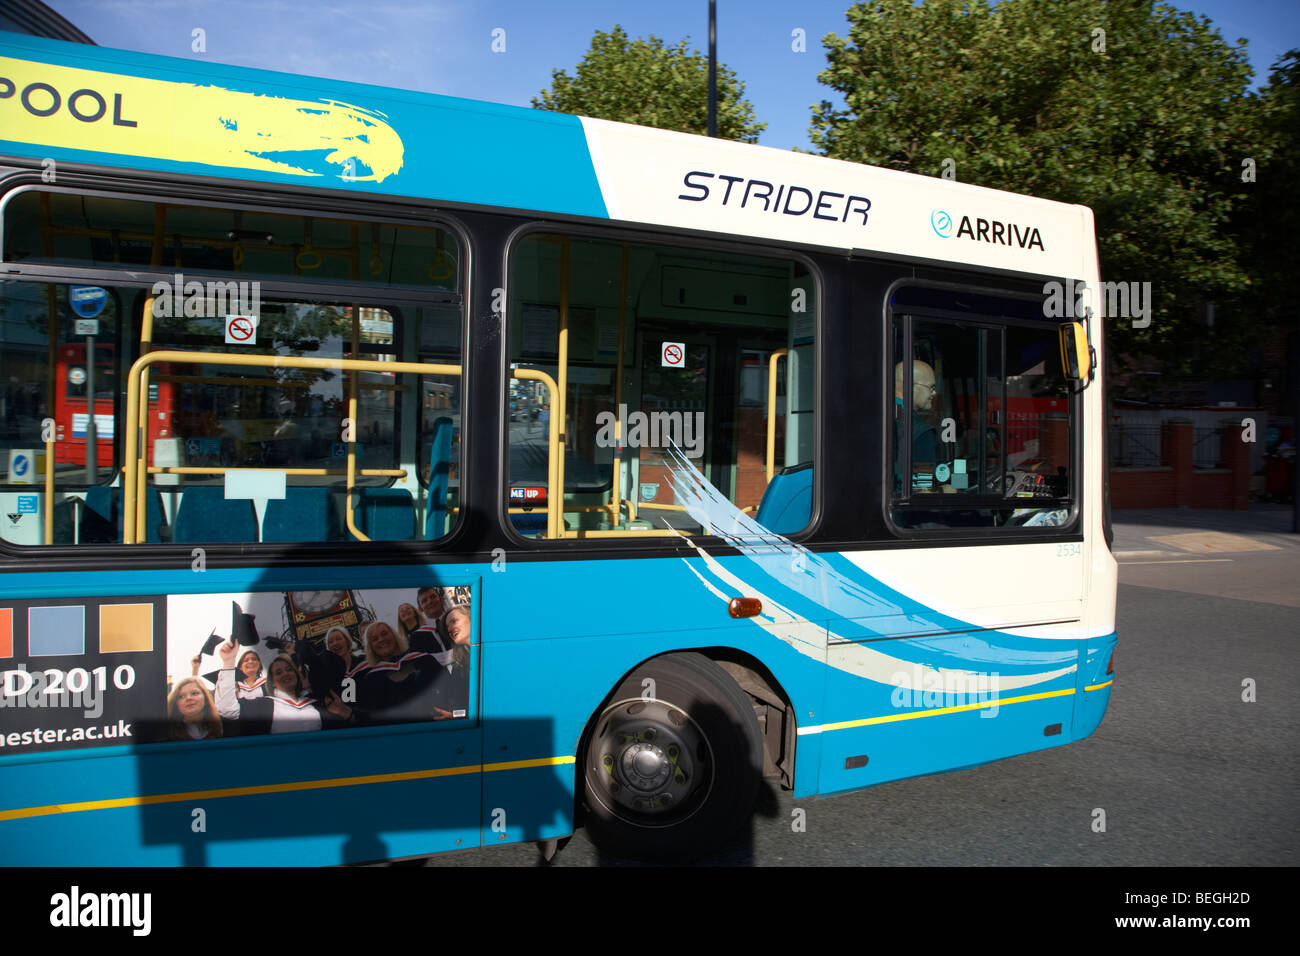 arriva strider single decker bus on a scheduled service in liverpool merseyside england uk - Stock Image